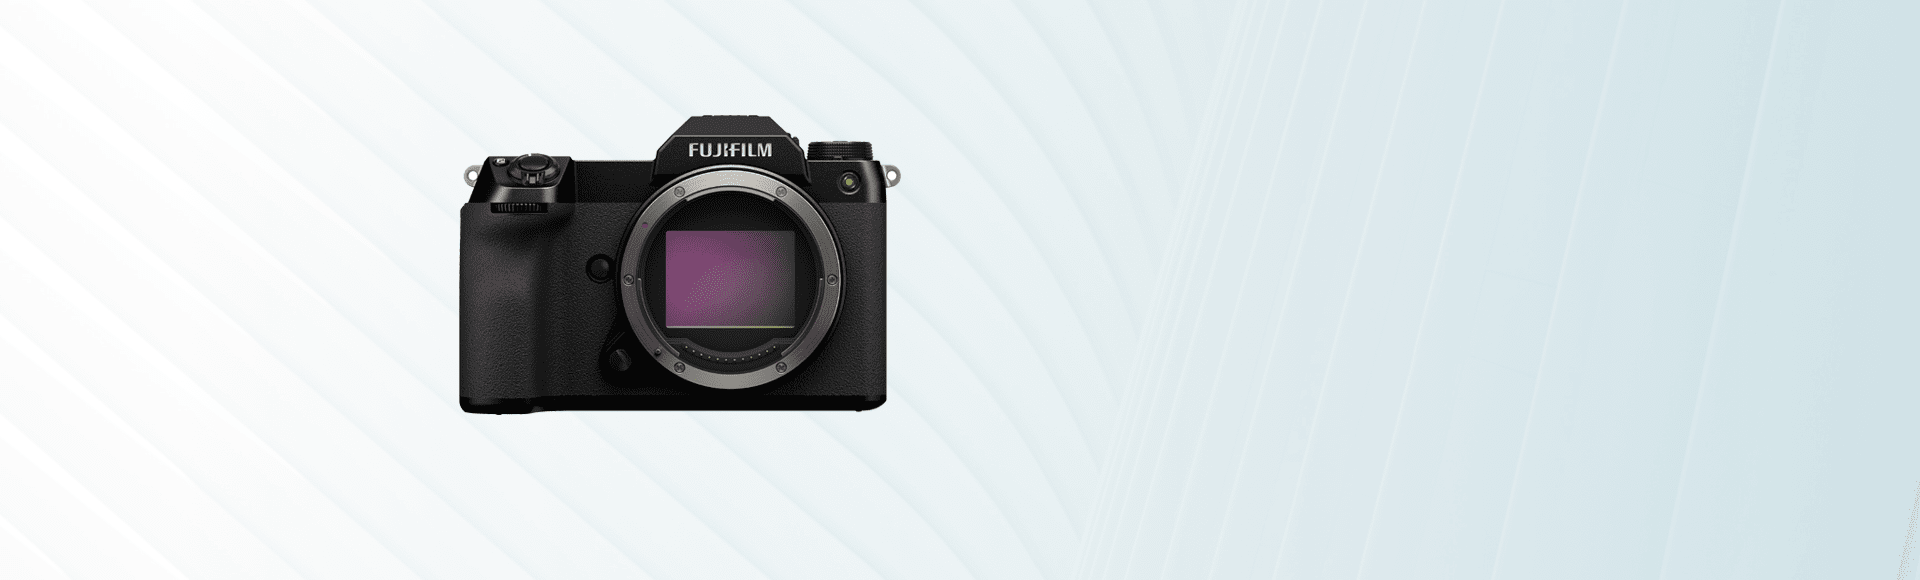 New Fujifilm GFX100S Medium Format Mirrorless Camera